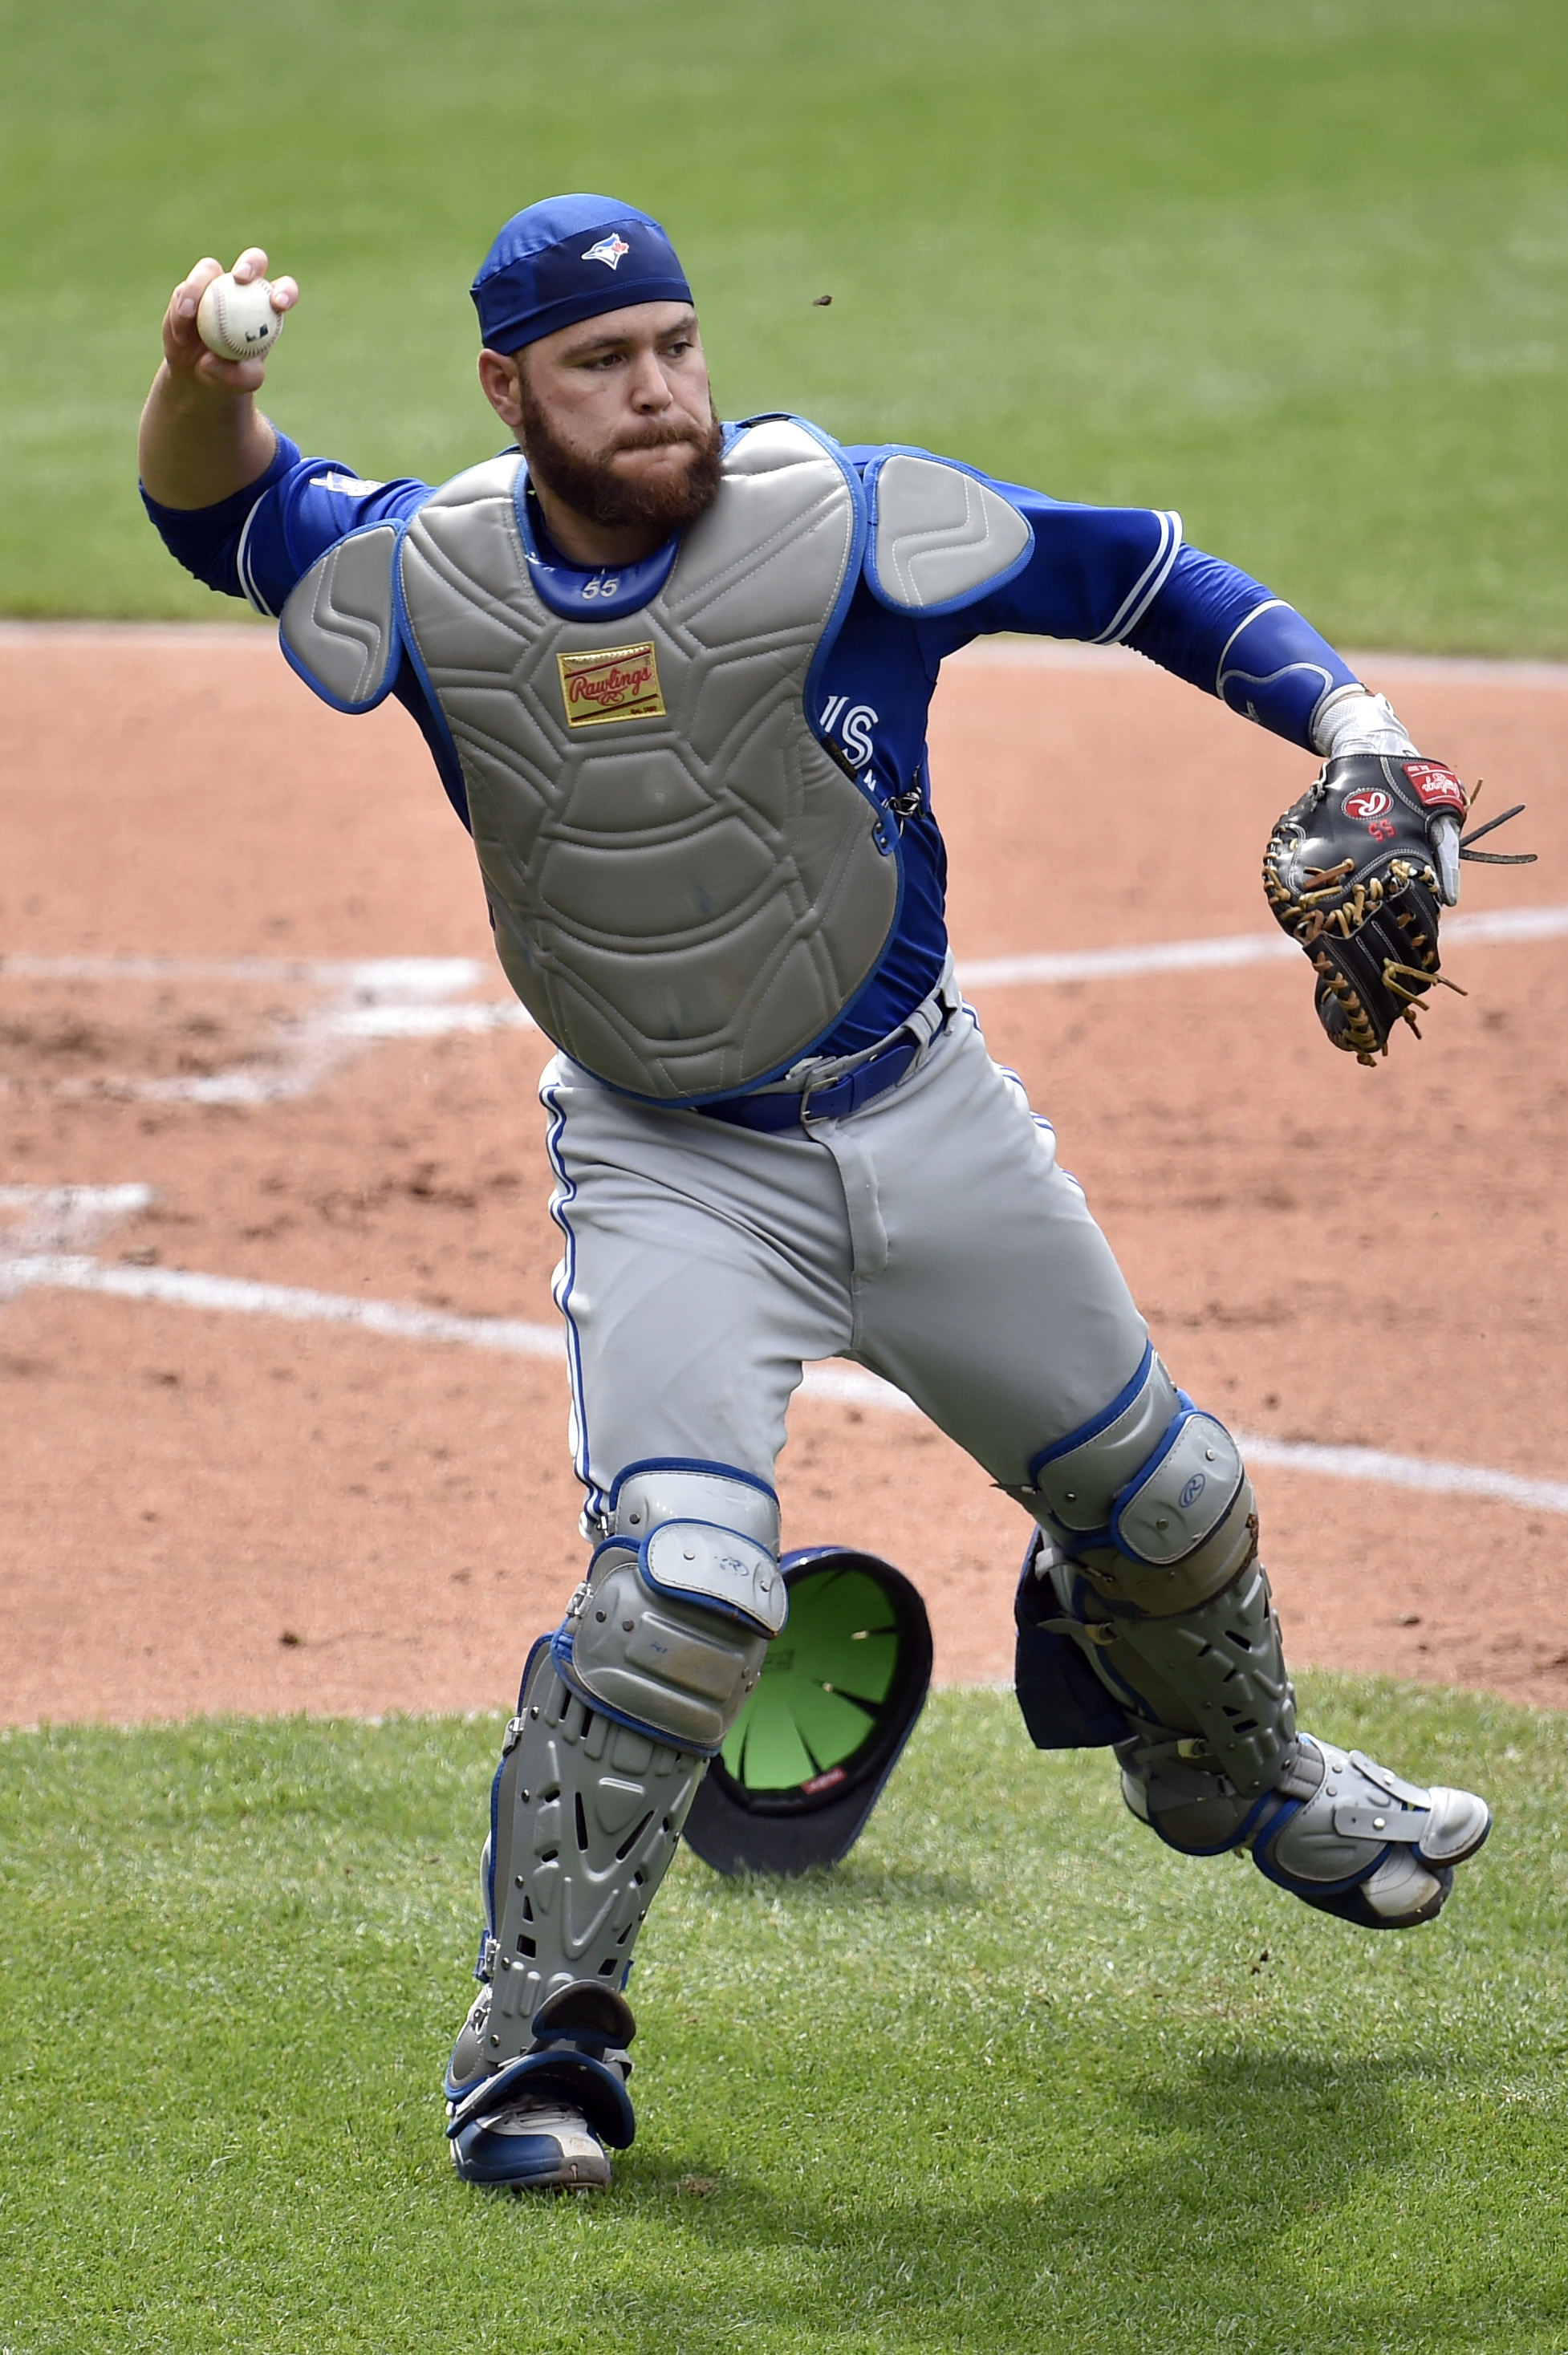 b64a46bc5 Blue Jays Trade Russell Martin To Dodgers - MLB Trade Rumors